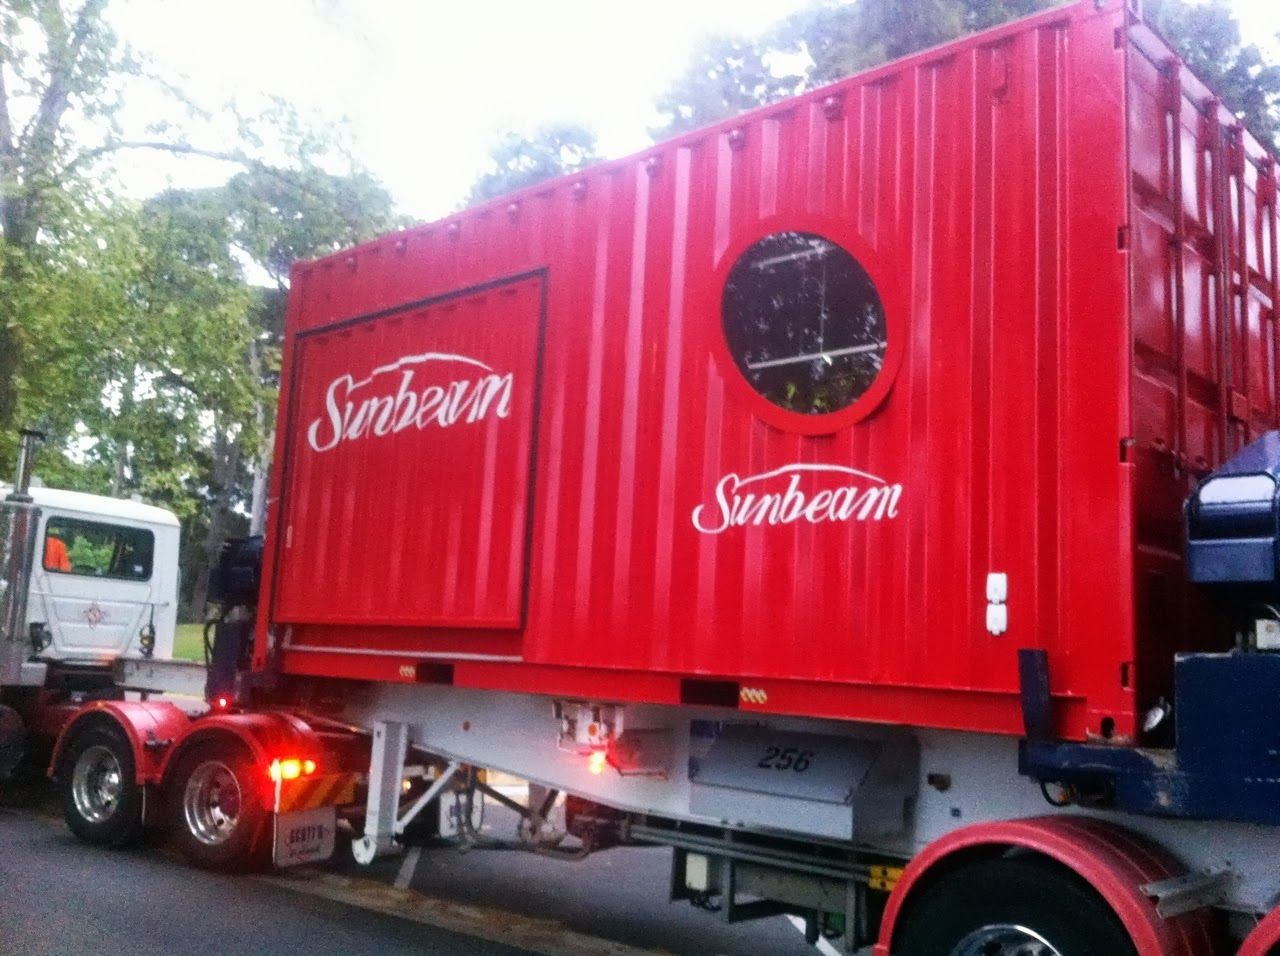 Sunbeam Mobile Trade Show Container